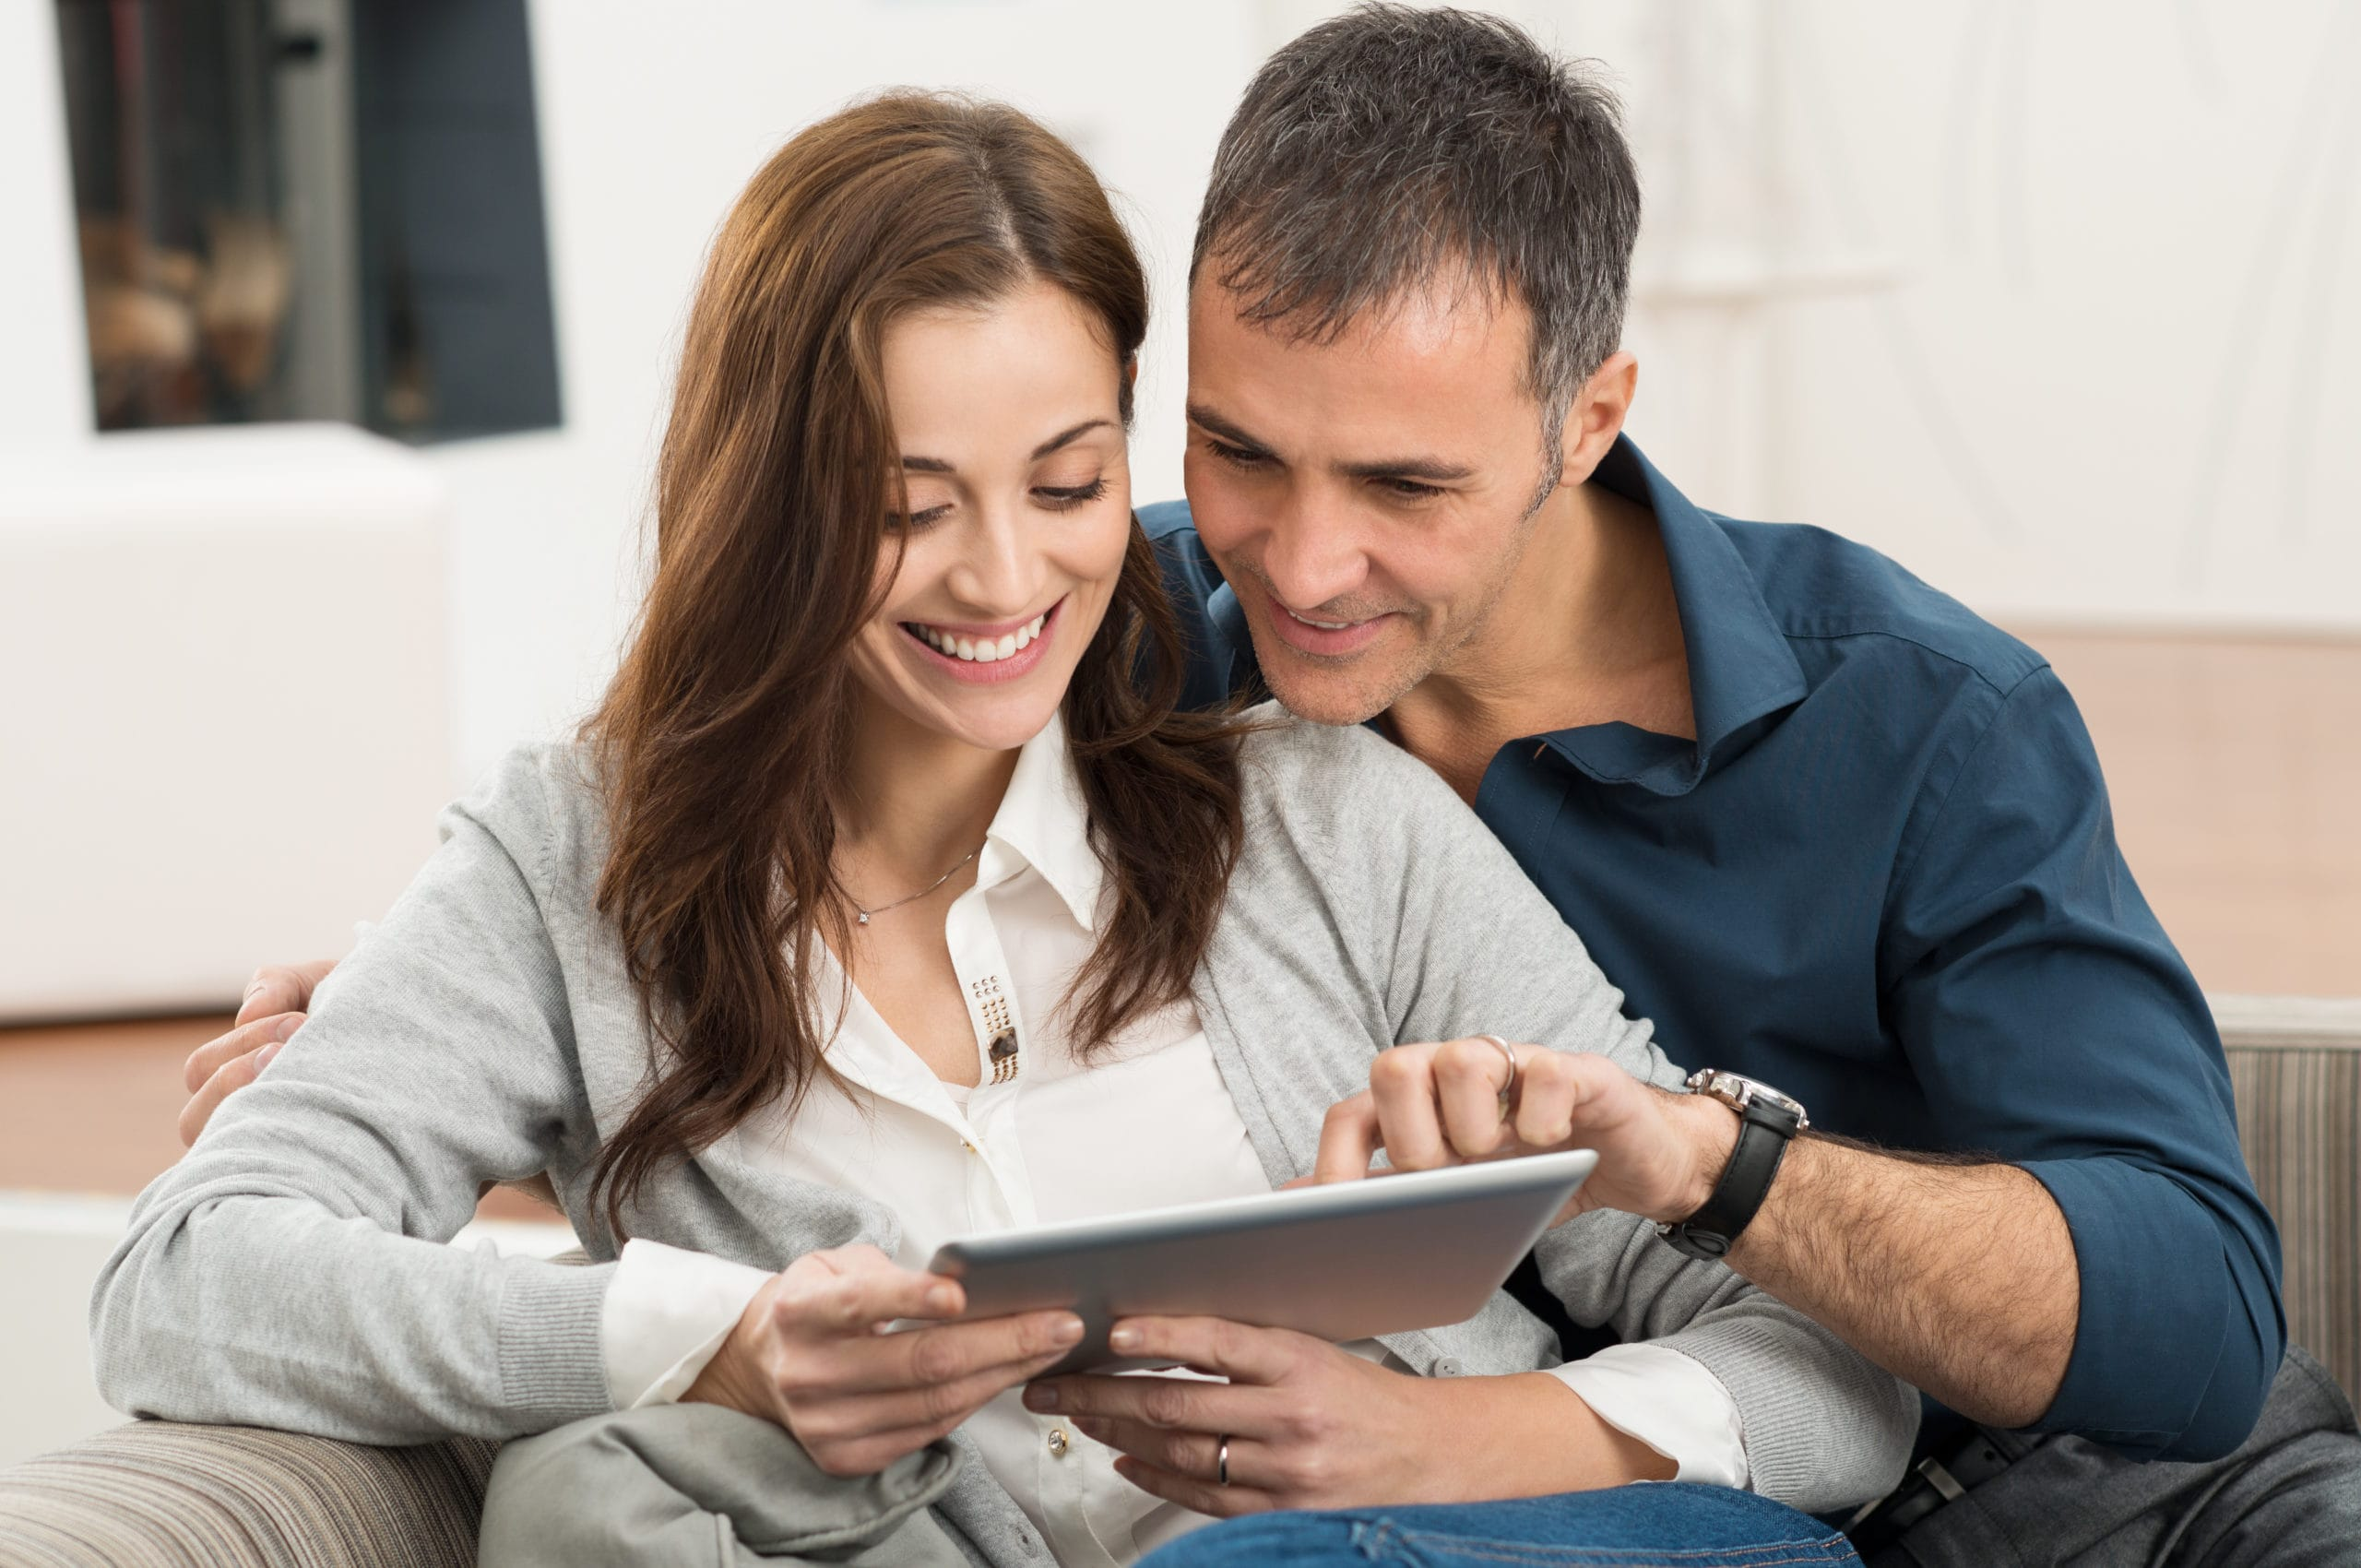 Portrait Of Happy Couple Sitting On Couch At Home Using Digital Tablet